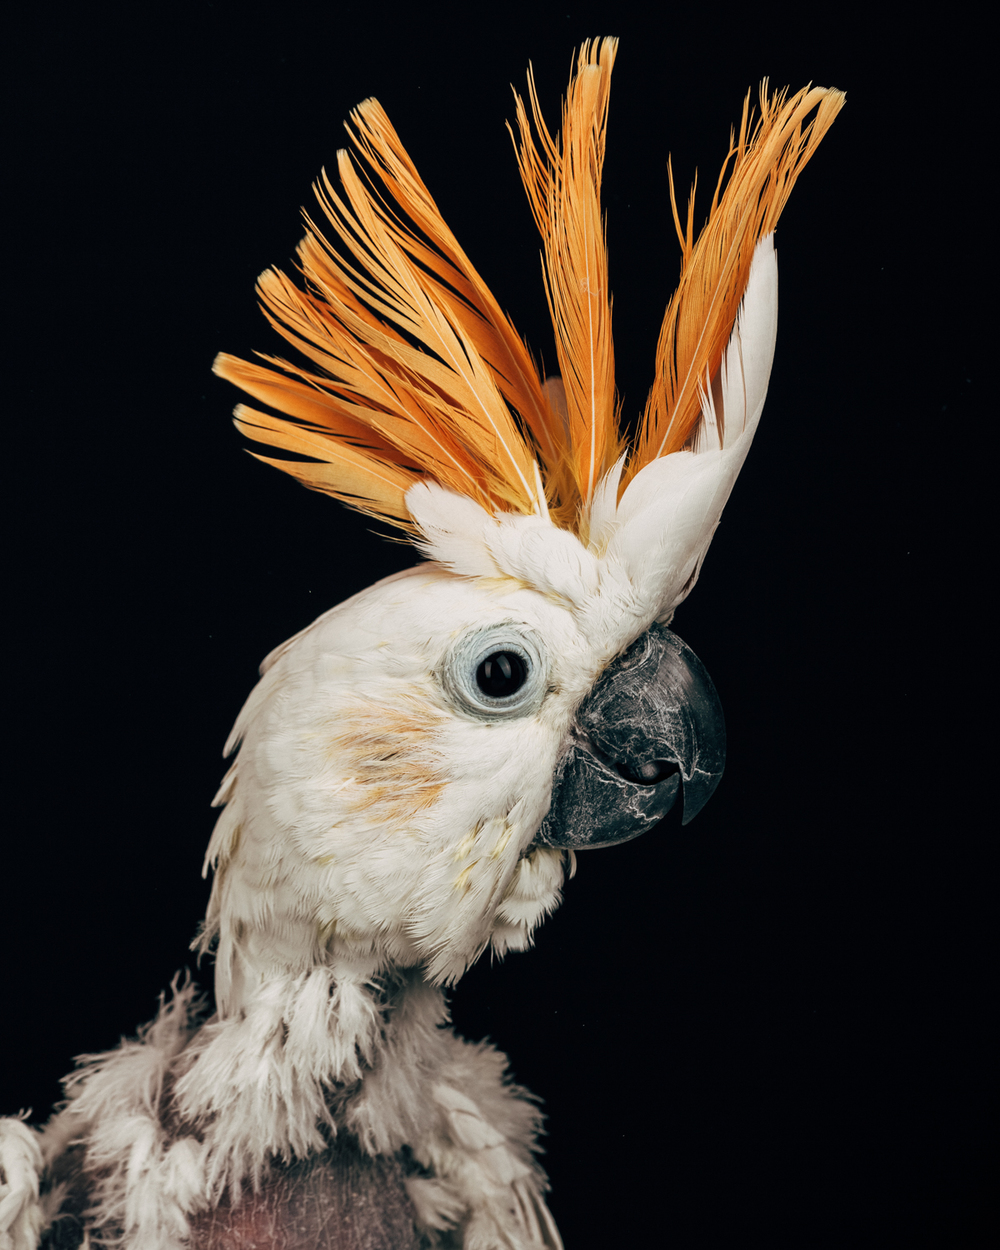 SCRUFFY JOE   Male. Citron cockatoo.                             (Cacatua sulphurea citrinocristata)   Age: early 20's.  Owned and loved by a man who was a manic depressant.  The owner finally decided the bird needed more than he could manage and gave it to the sanctuary.